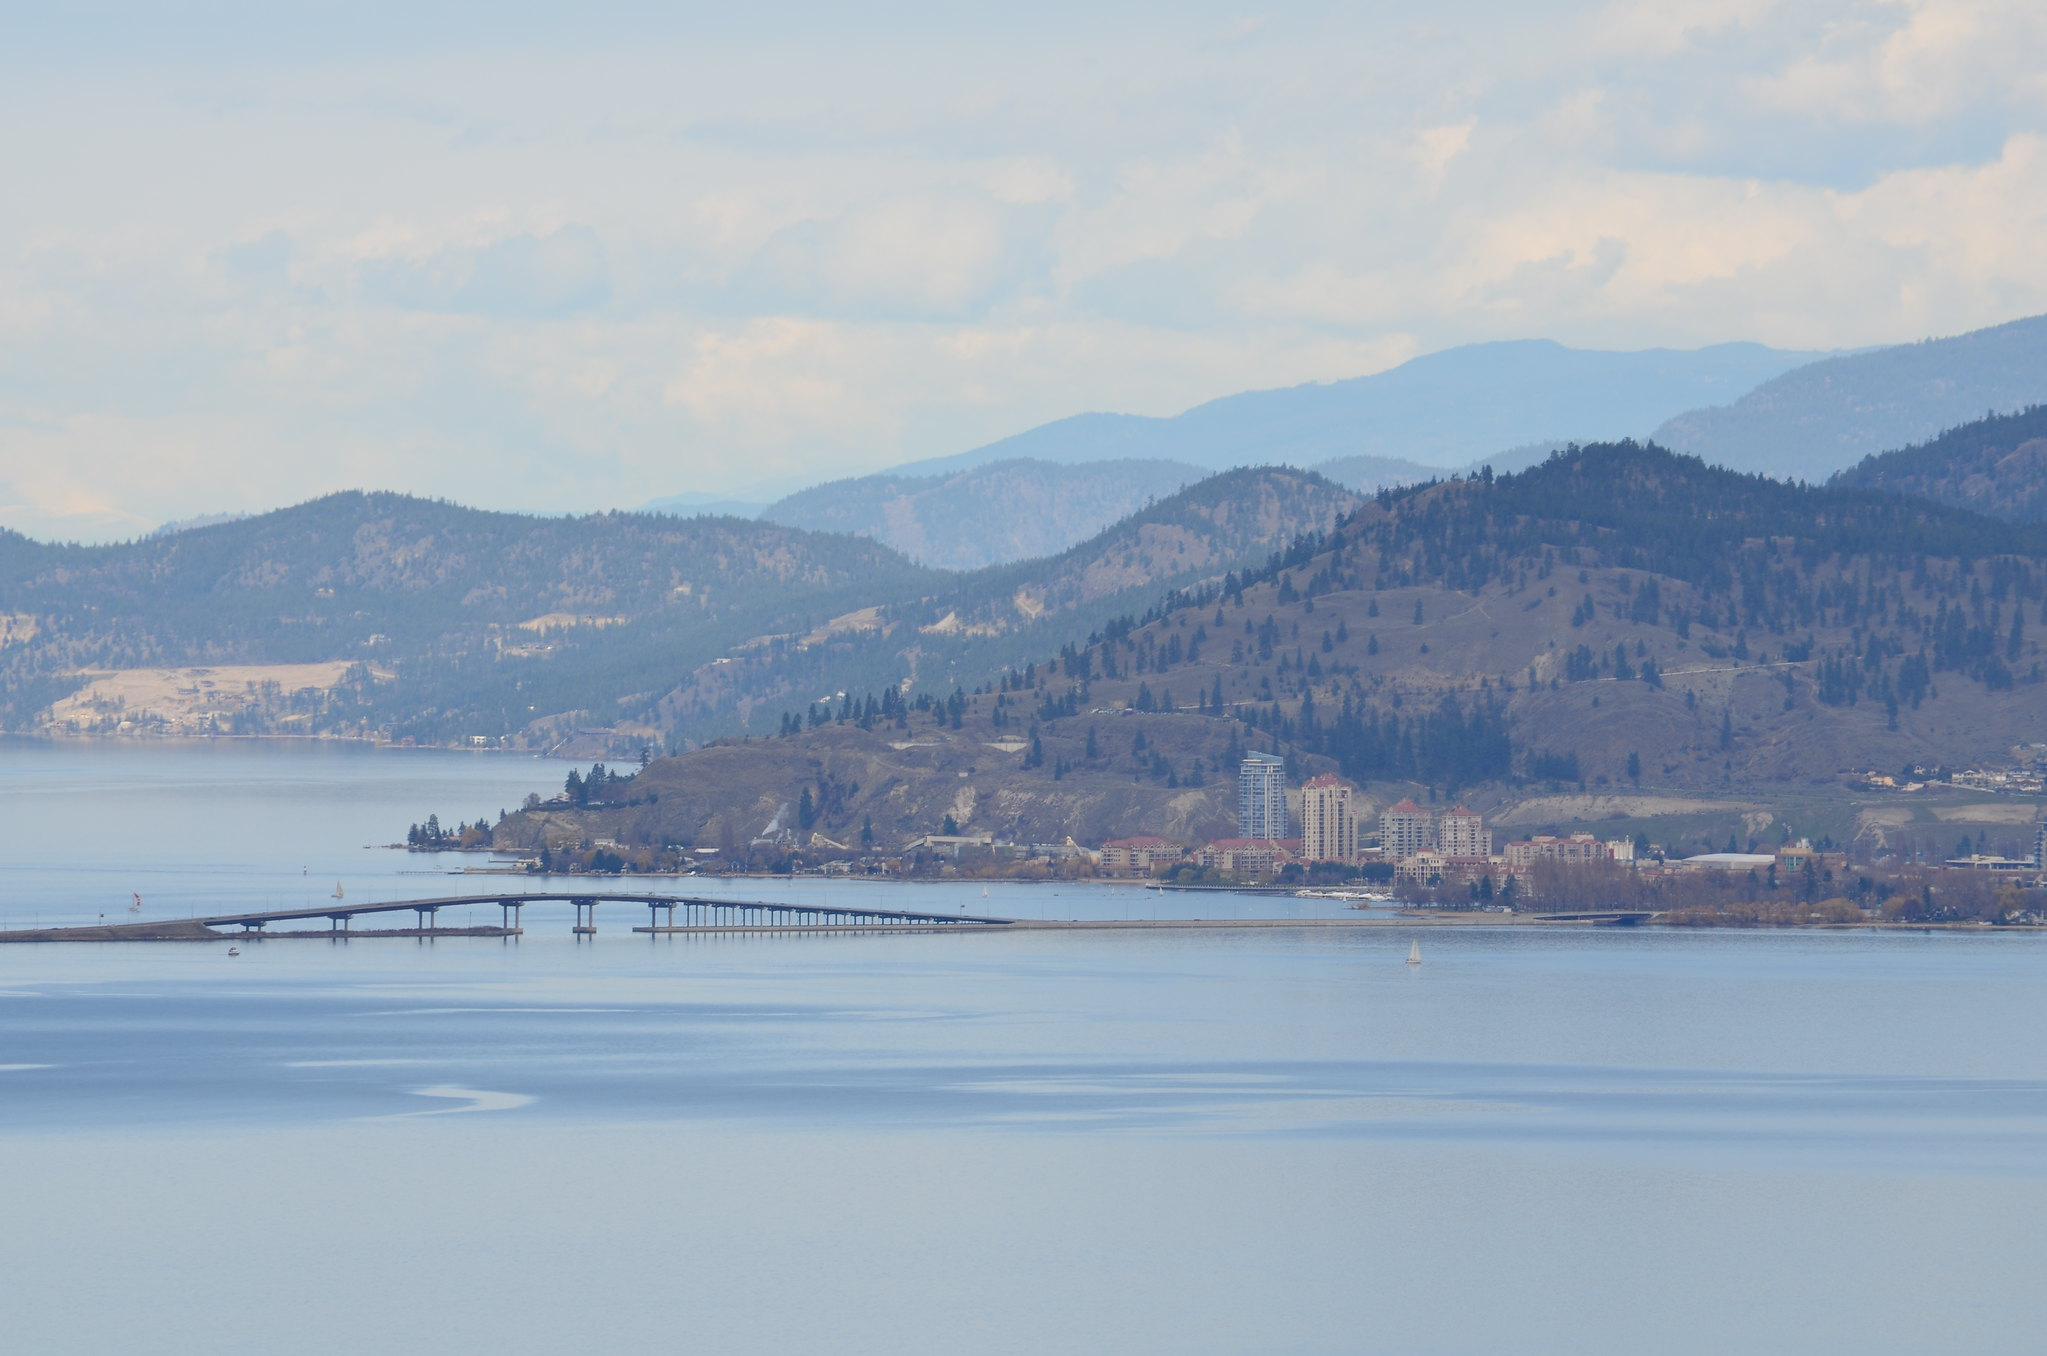 View of Downtown Kelowna